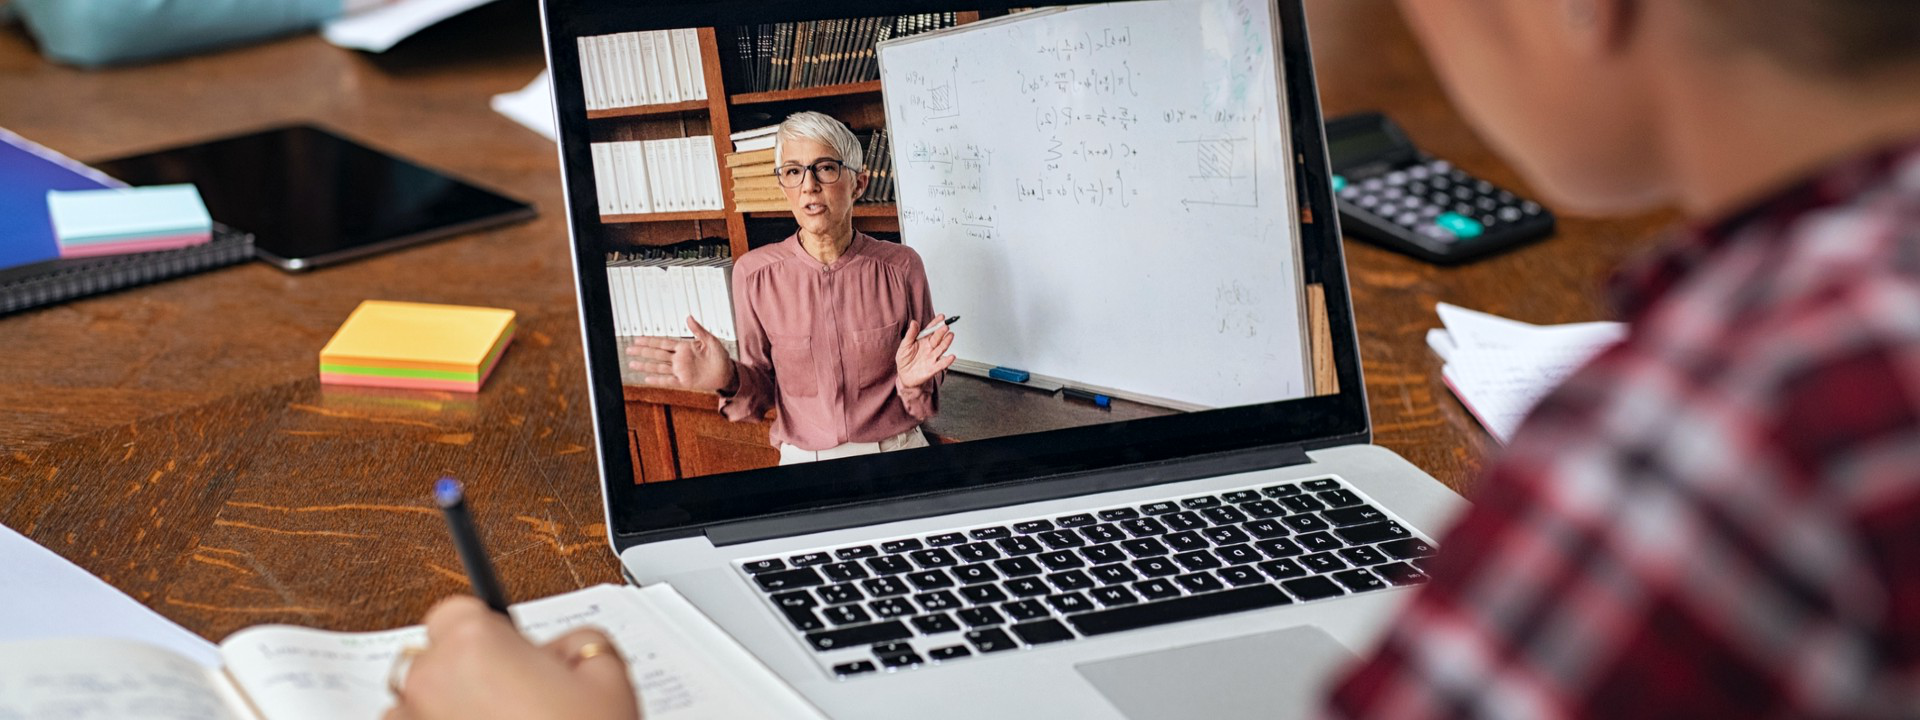 Laptop showing professor giving remote lecture